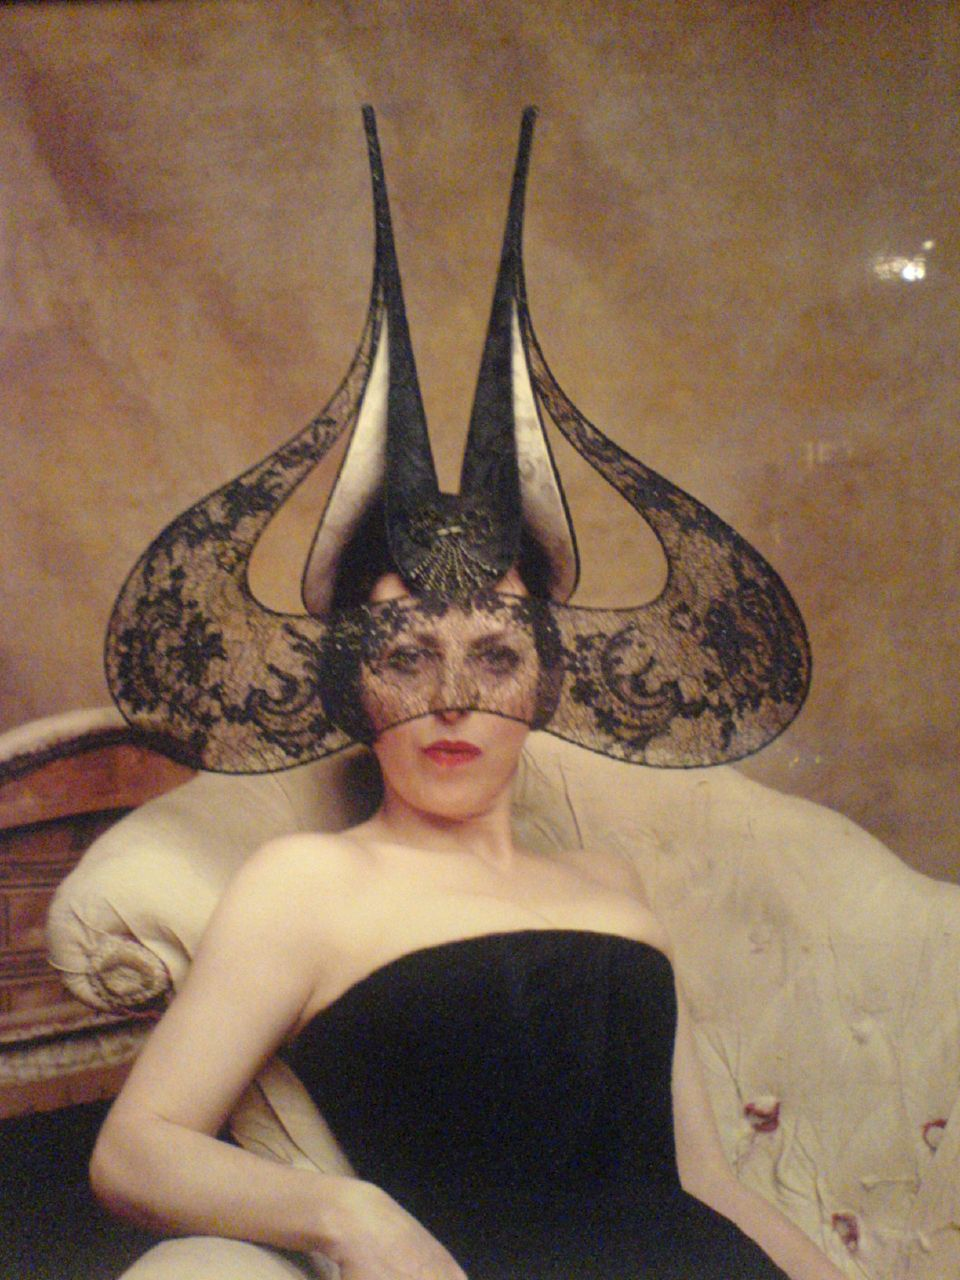 ... Threads: Royal Wedding Hat Inspiration. Style Icon: Isabella Blow Isabella Blow